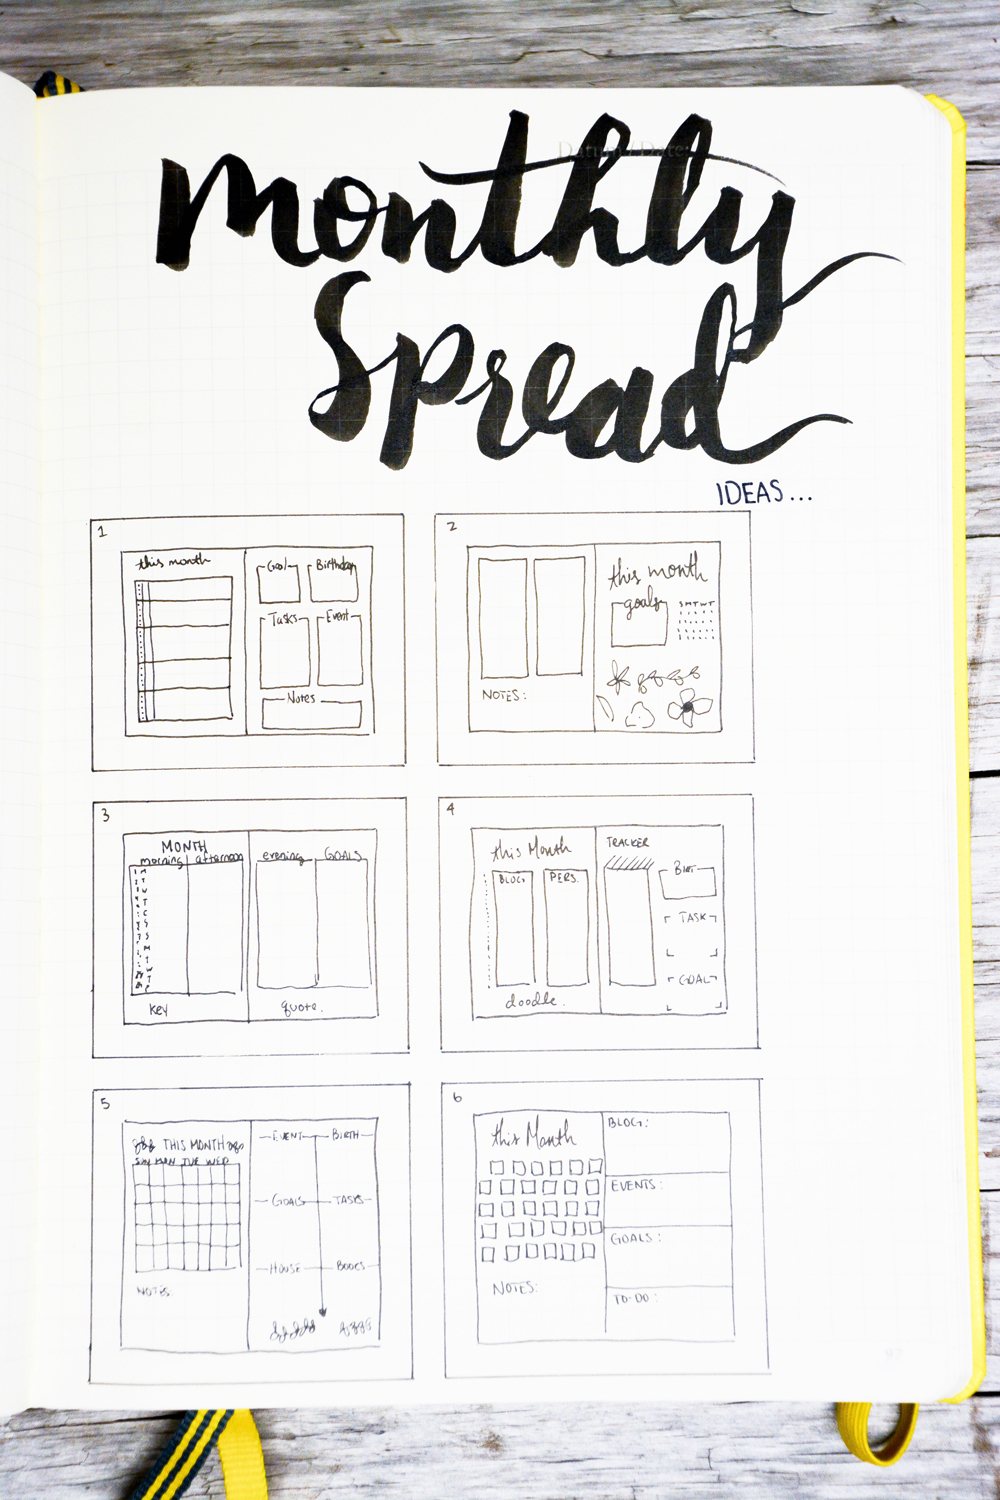 Bullet Journal Ideas: 5 Creative Monthly Spread Ideas For Your Bullet Journal